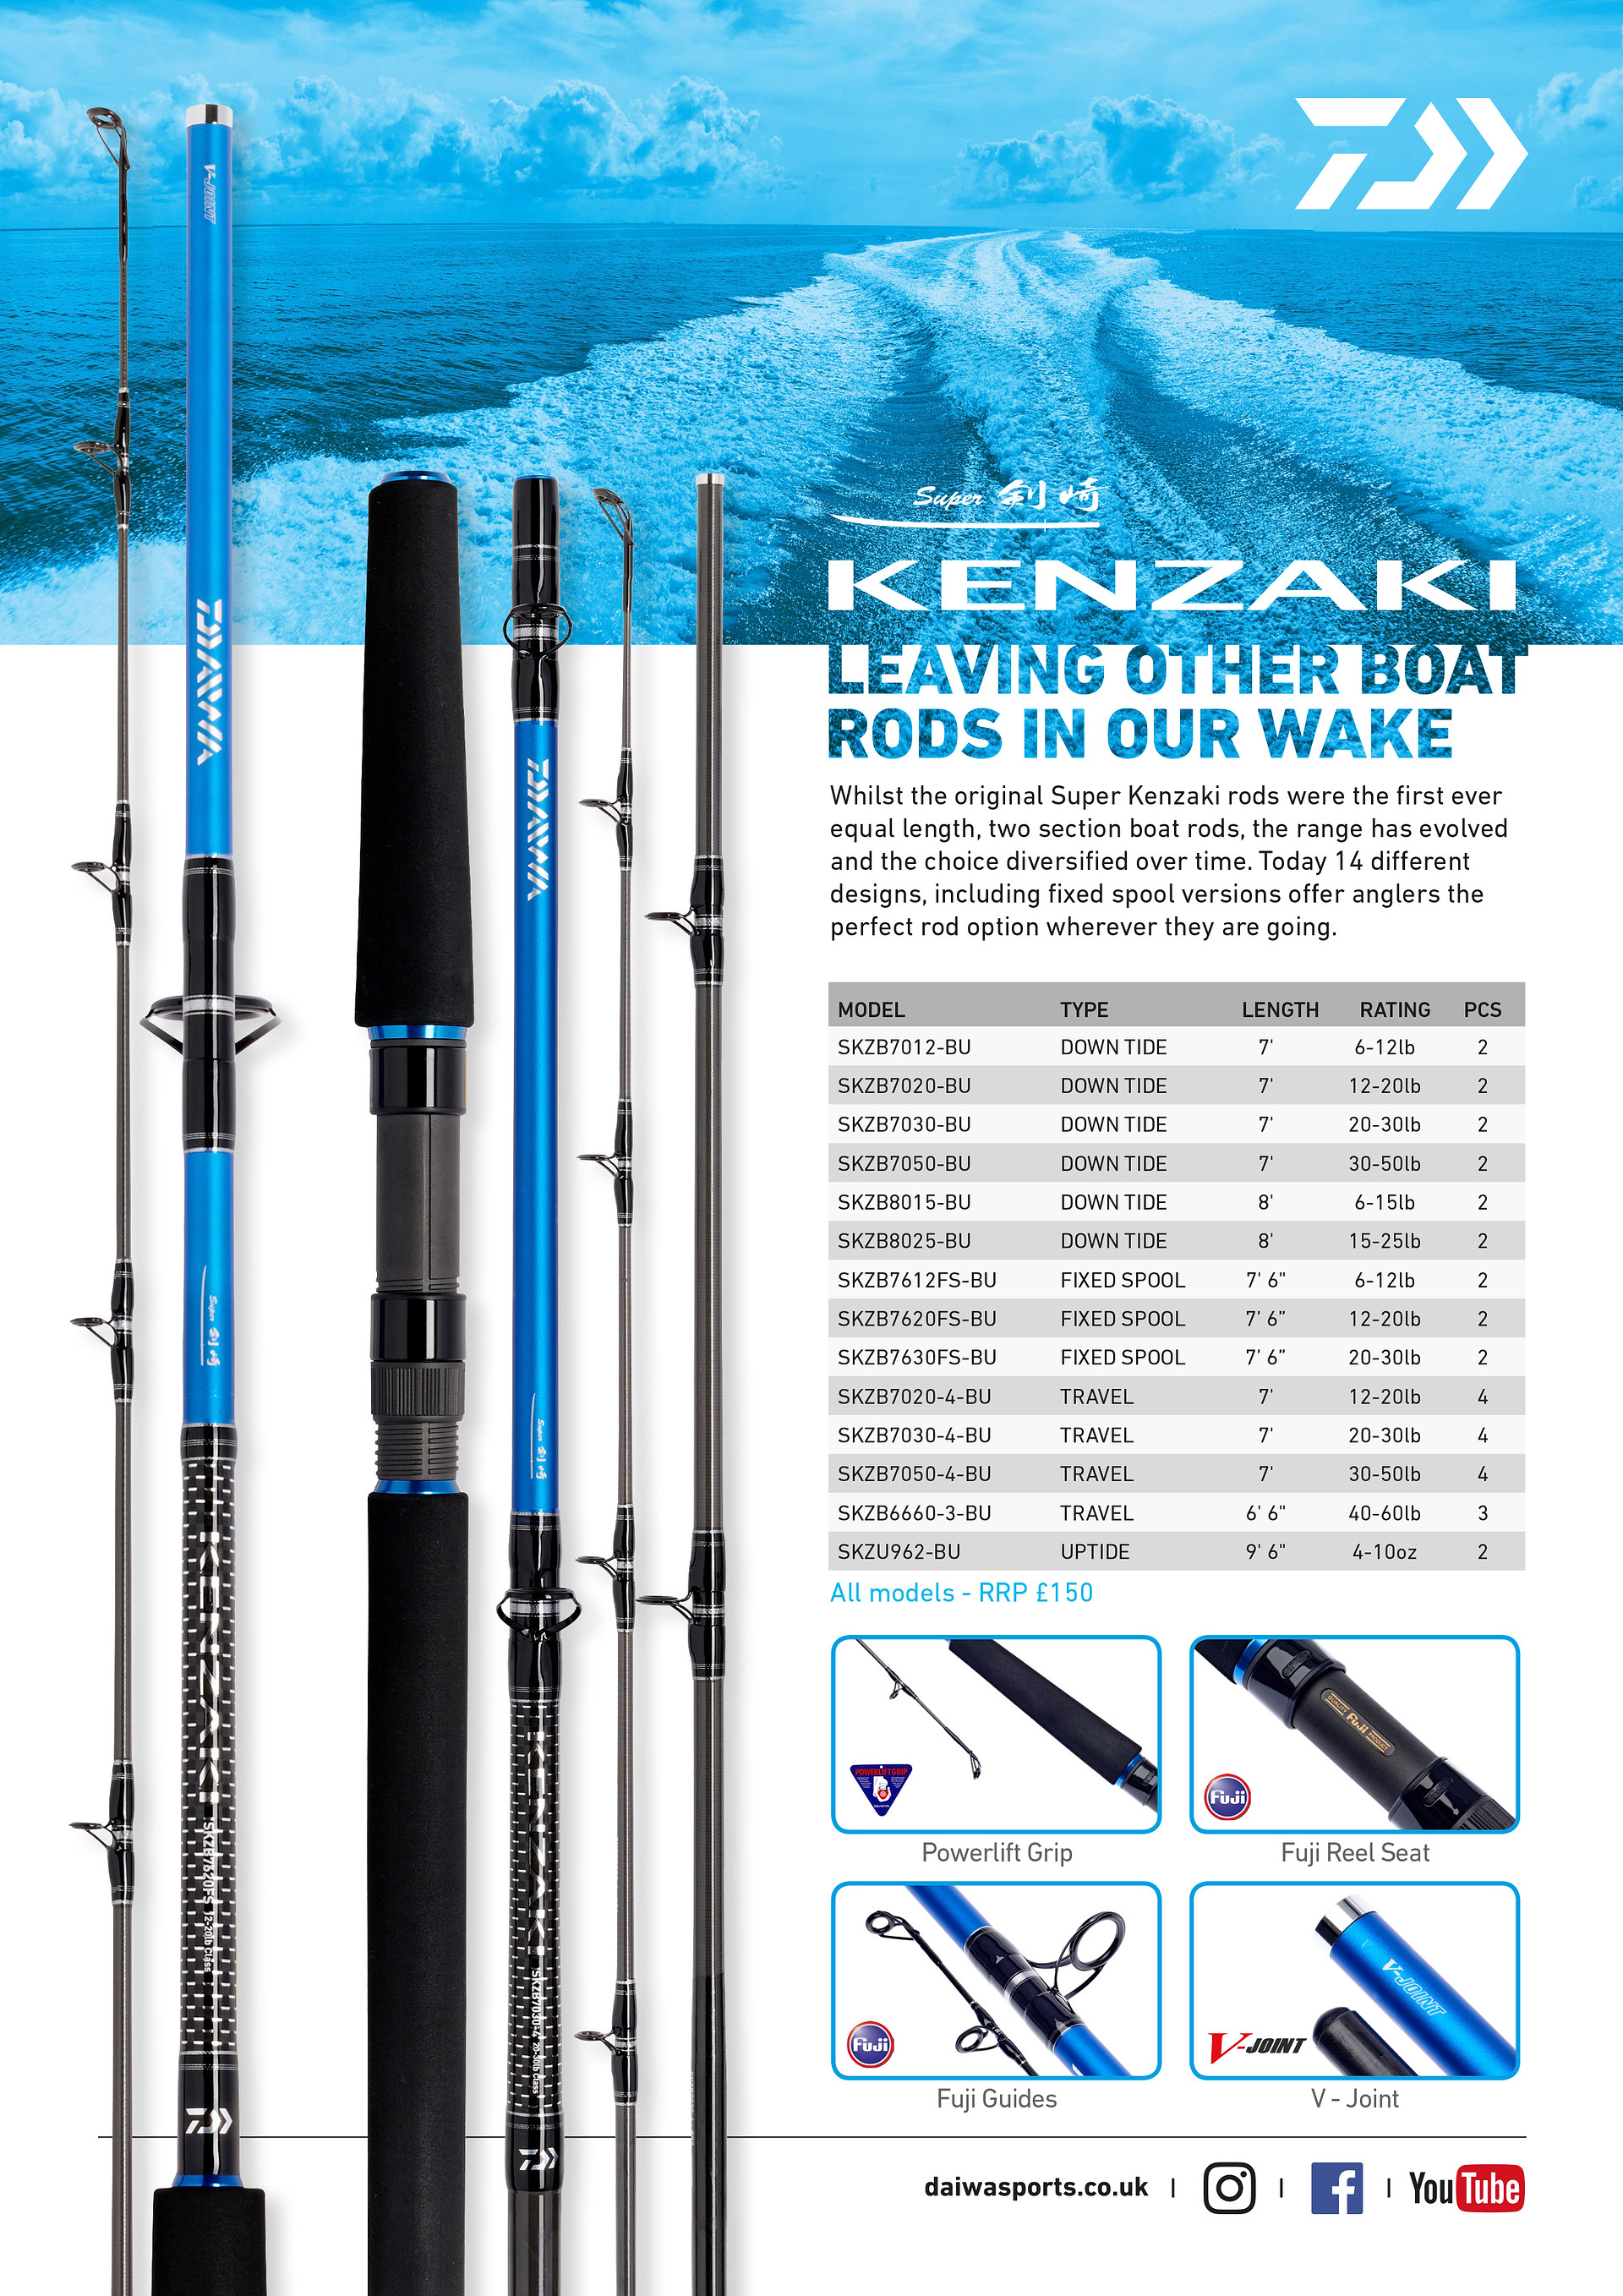 Daiwa Super Kenzaki Rods